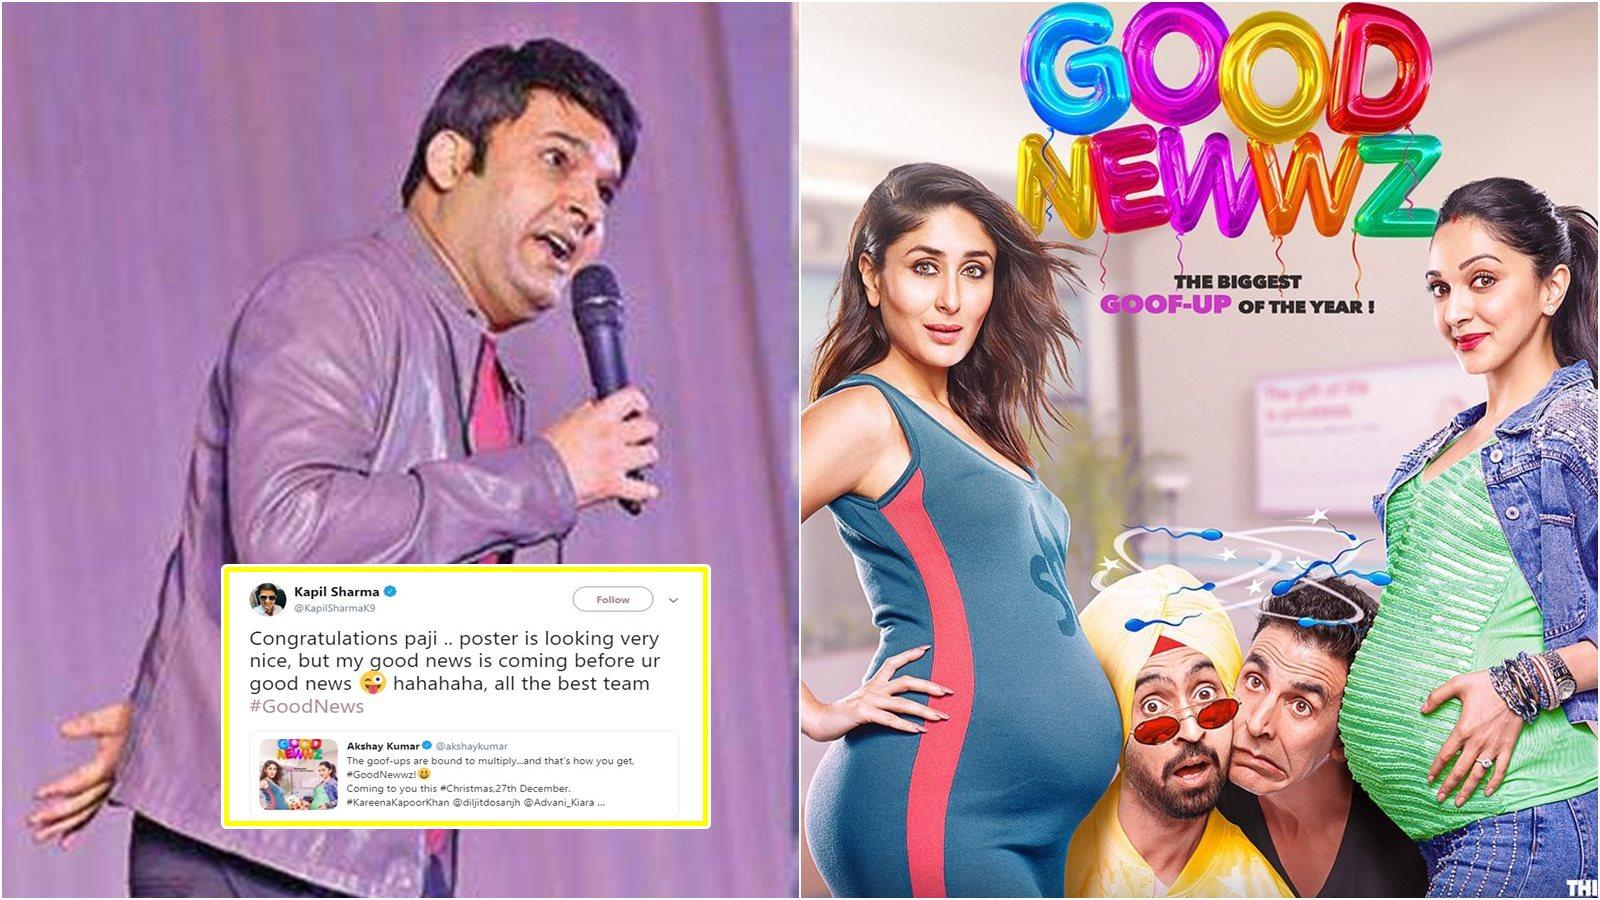 Akshay Kumar and Kapil Sharma's fun Twitter banter over 'Good Newwz' is just unmissable